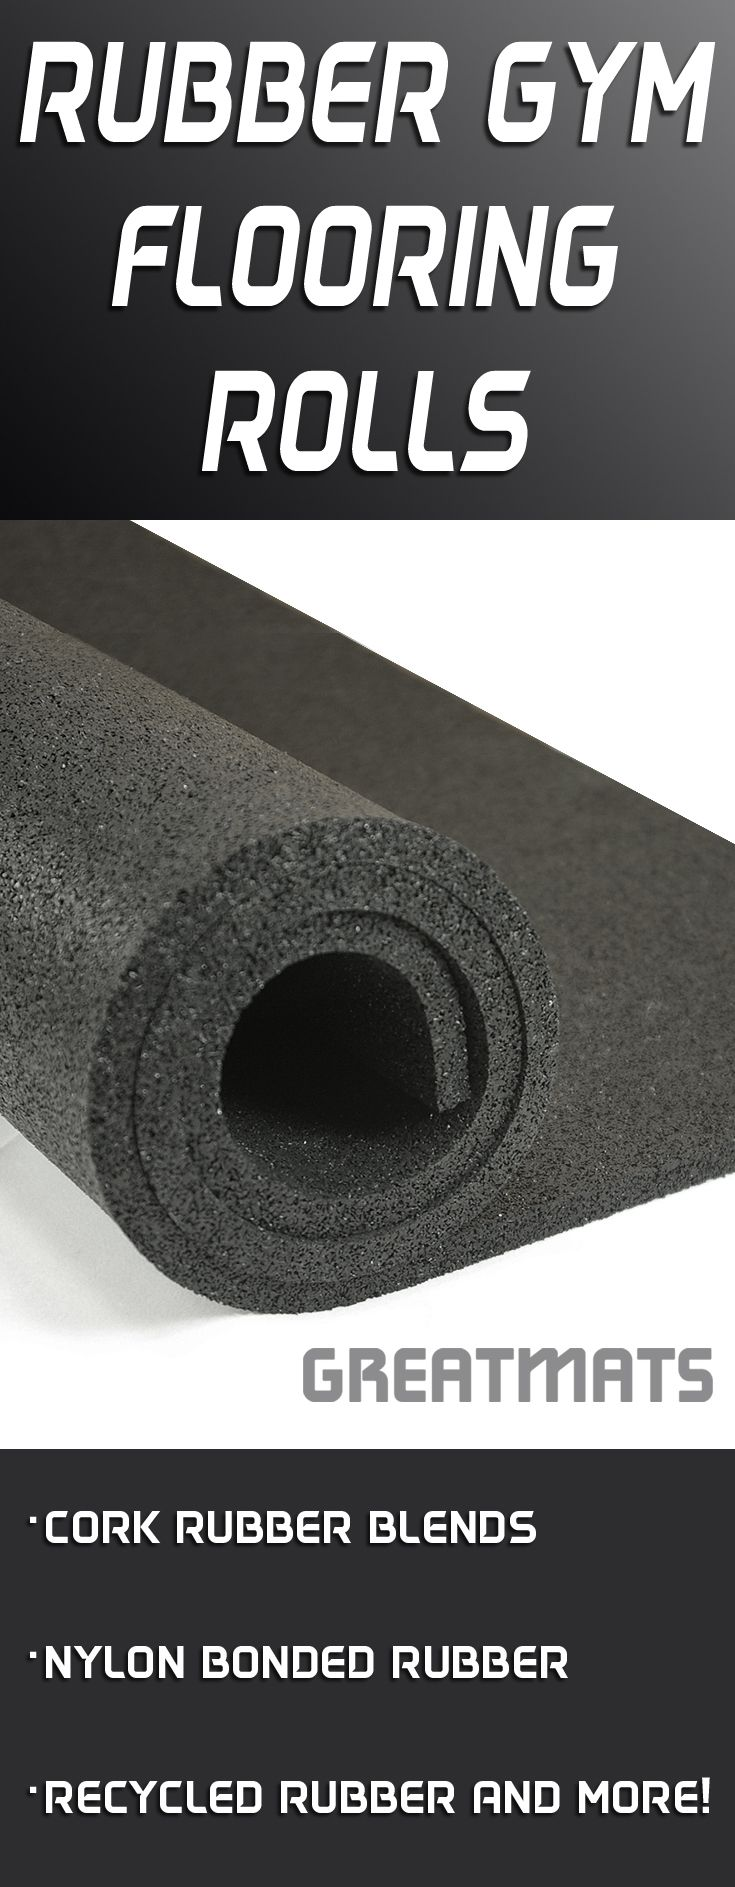 greatmats has a huge selection of rubber gym flooring rolls extending far beyond the basic black